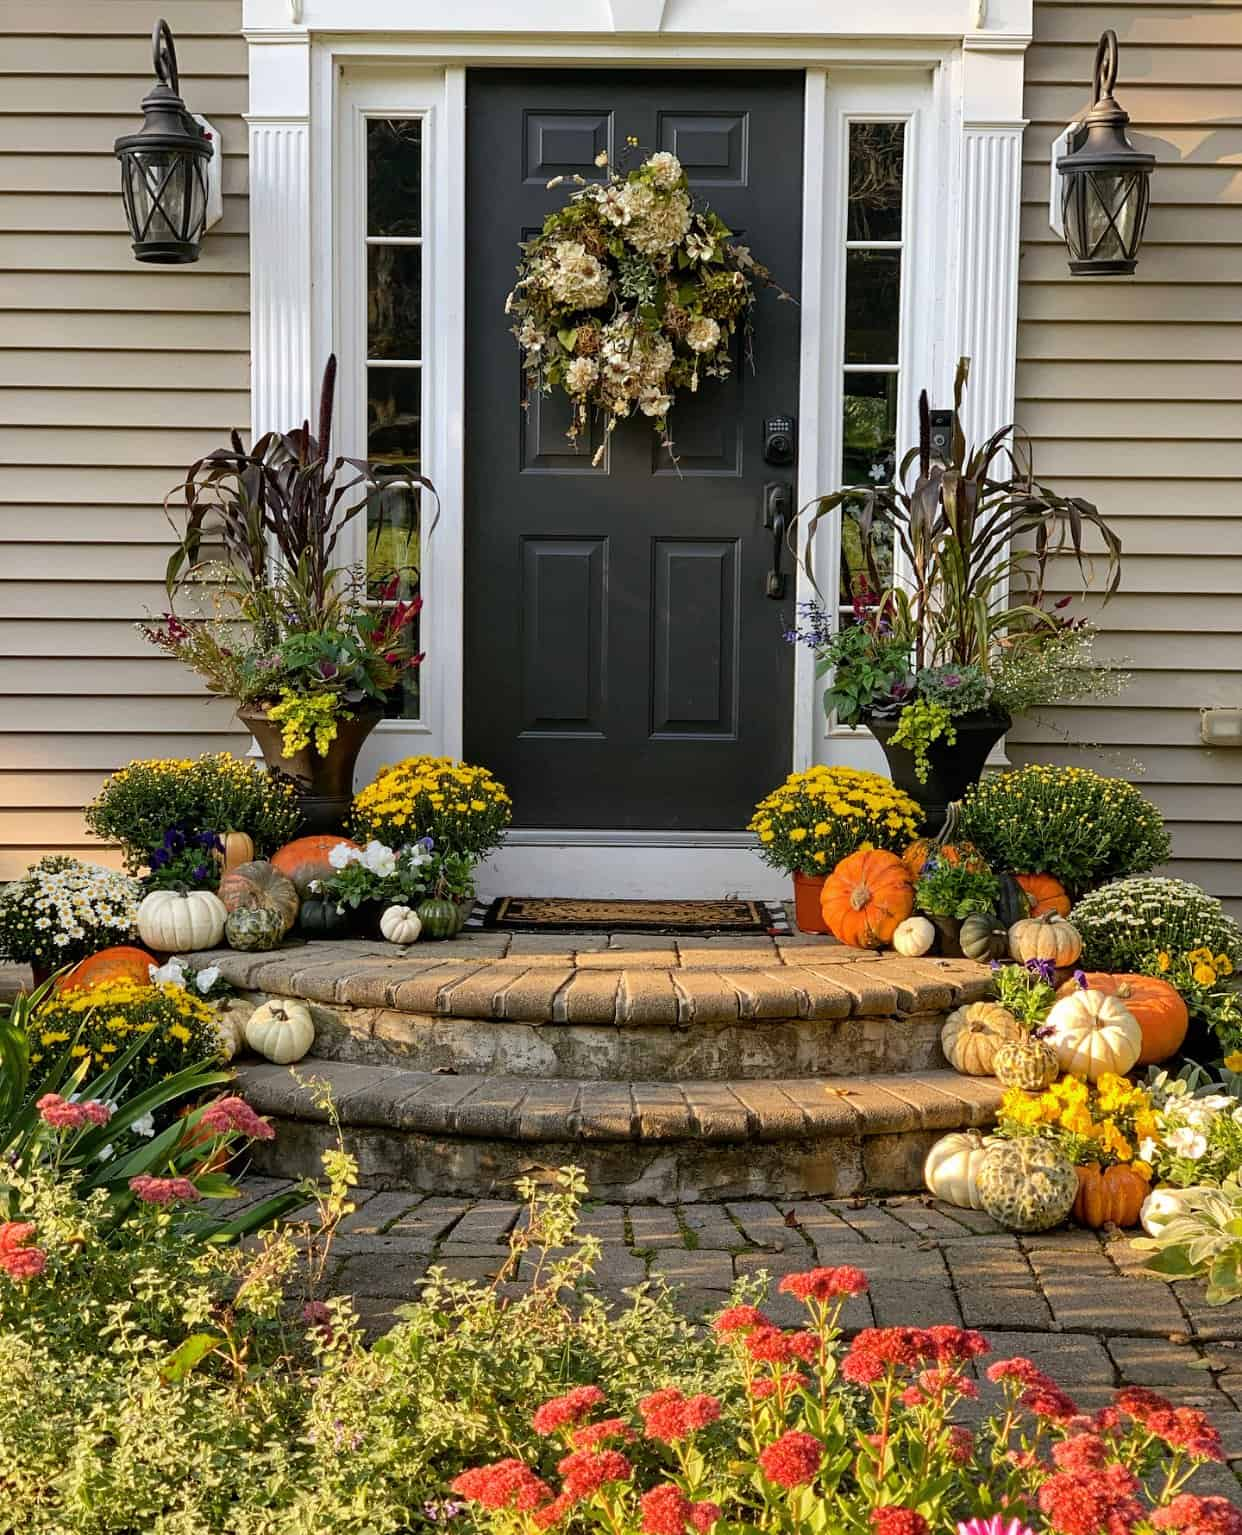 9 Simple Fall Porch Decor Ideas Stacy Ling